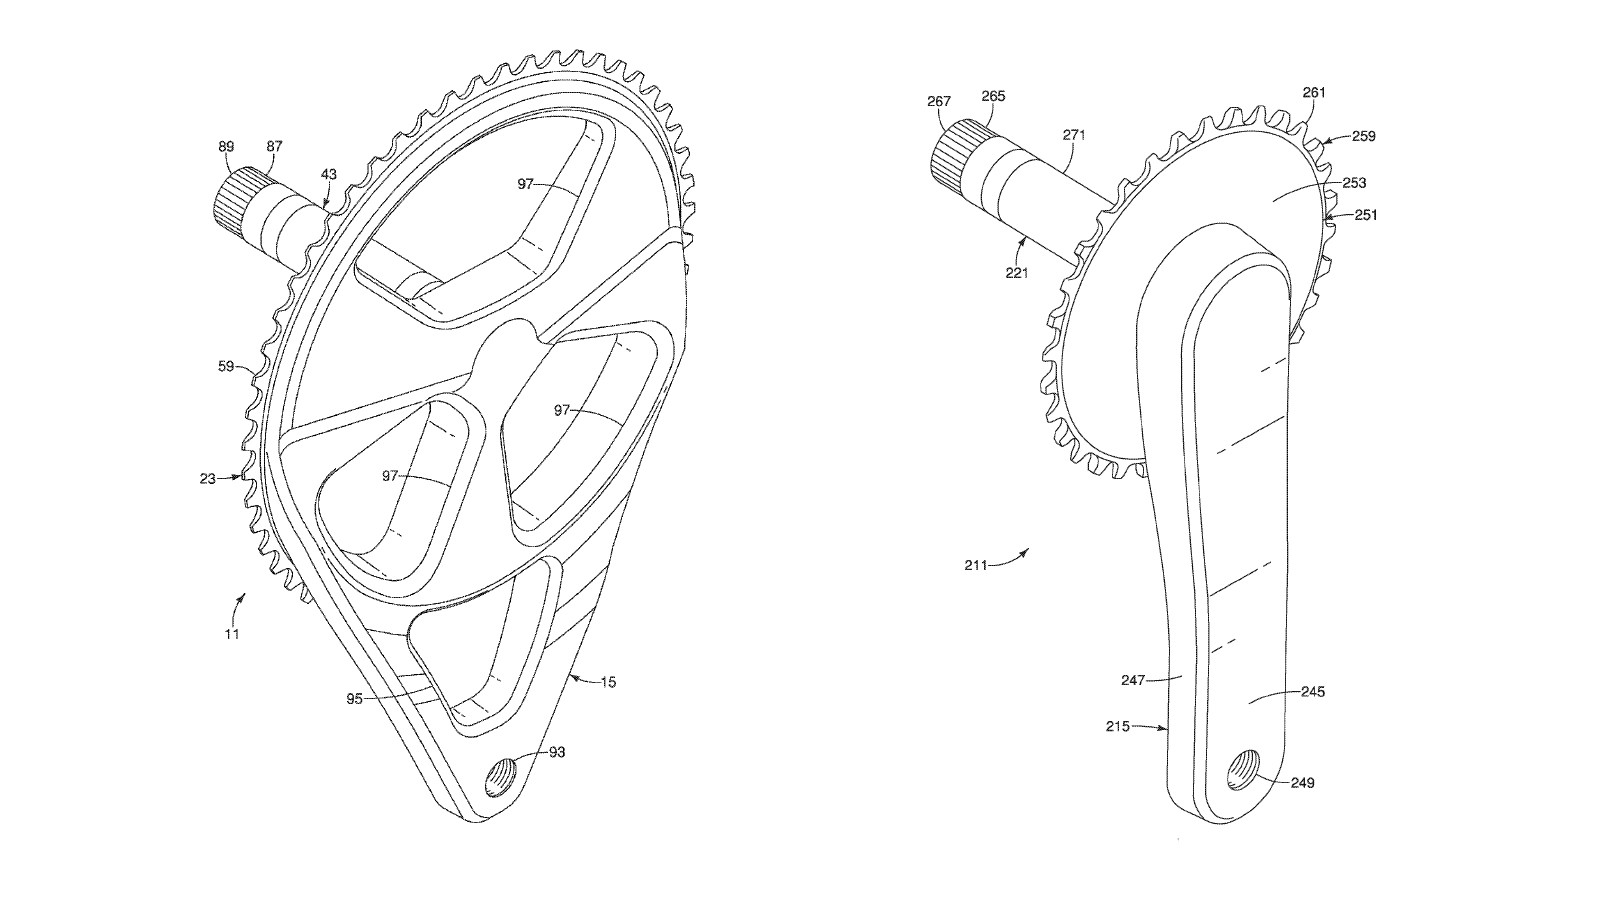 The proposed road and mountain bike crank